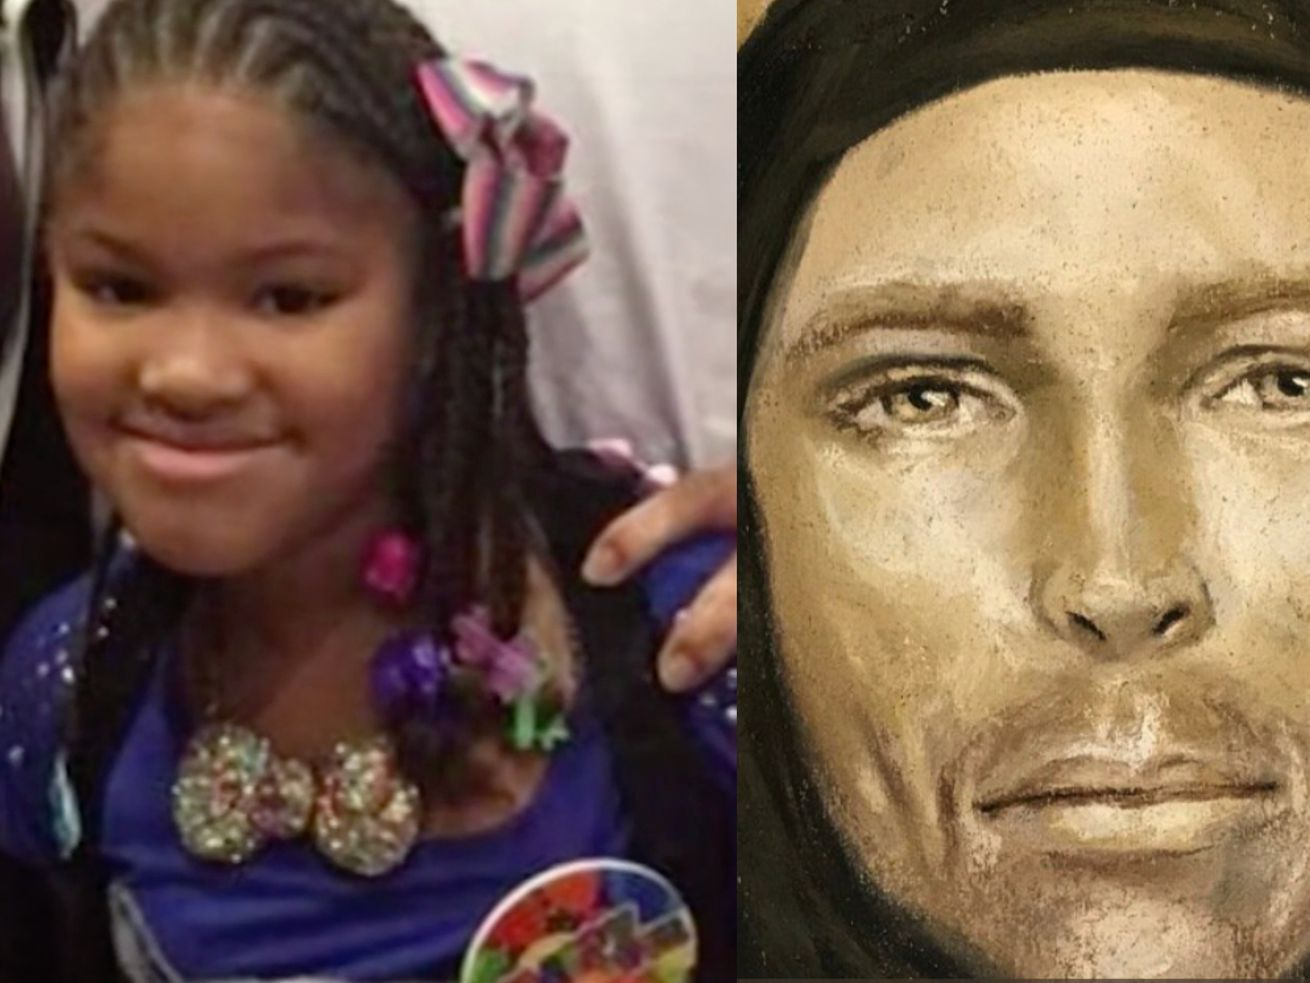 7-year-old Jazmine Barnes was killed when a gunman fired into her family's car on December 30, 2018.